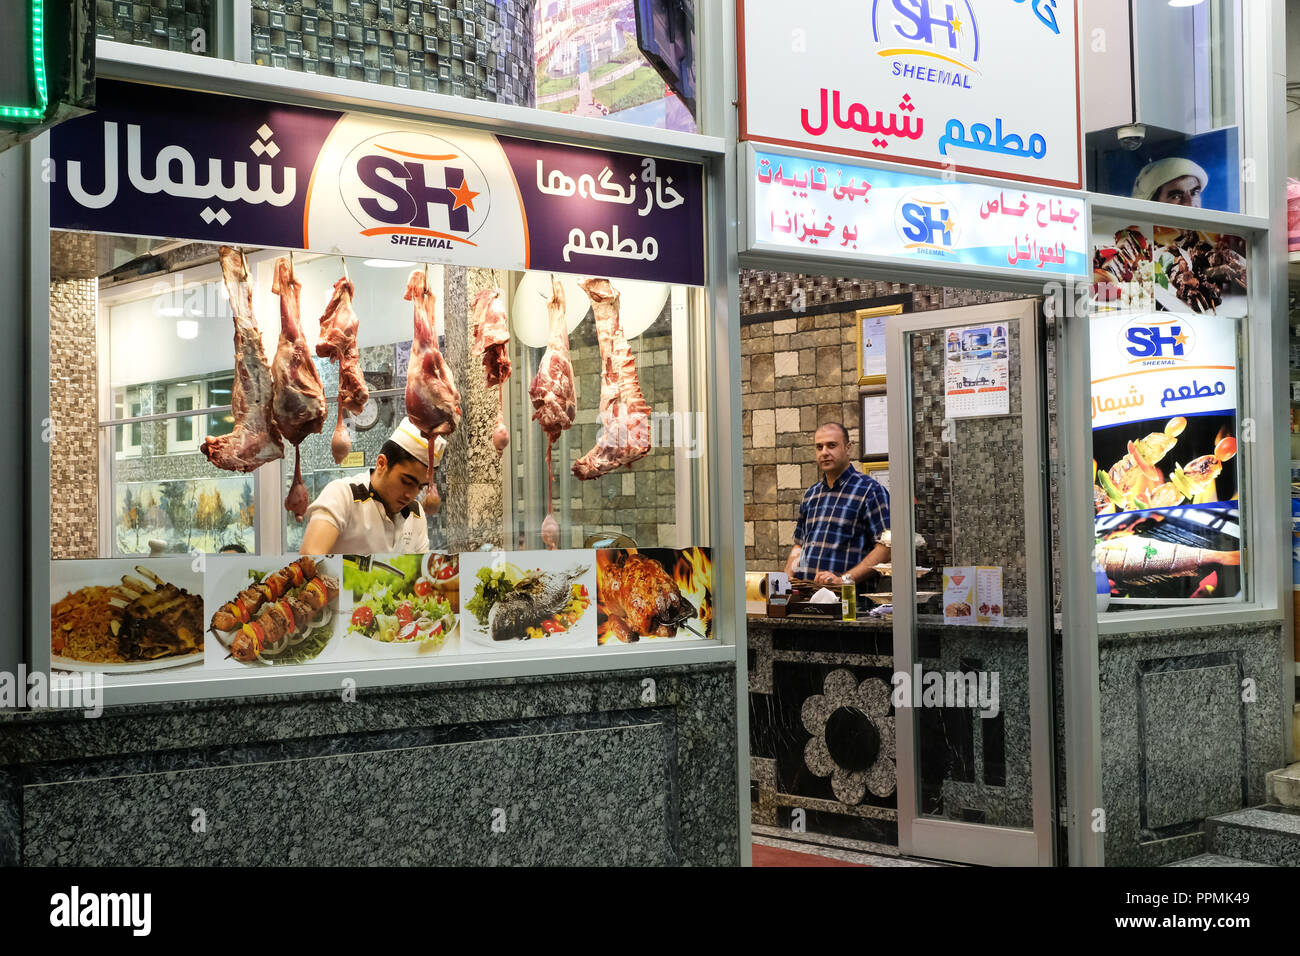 Lamb legs in a window of a falafel and shawarma restaurant in the bazaar district of Dohuh, in Northern Iraq, Kurdistan - Restaurant in Dohuk, Nord-Irak, Kurdistan - Stock Image